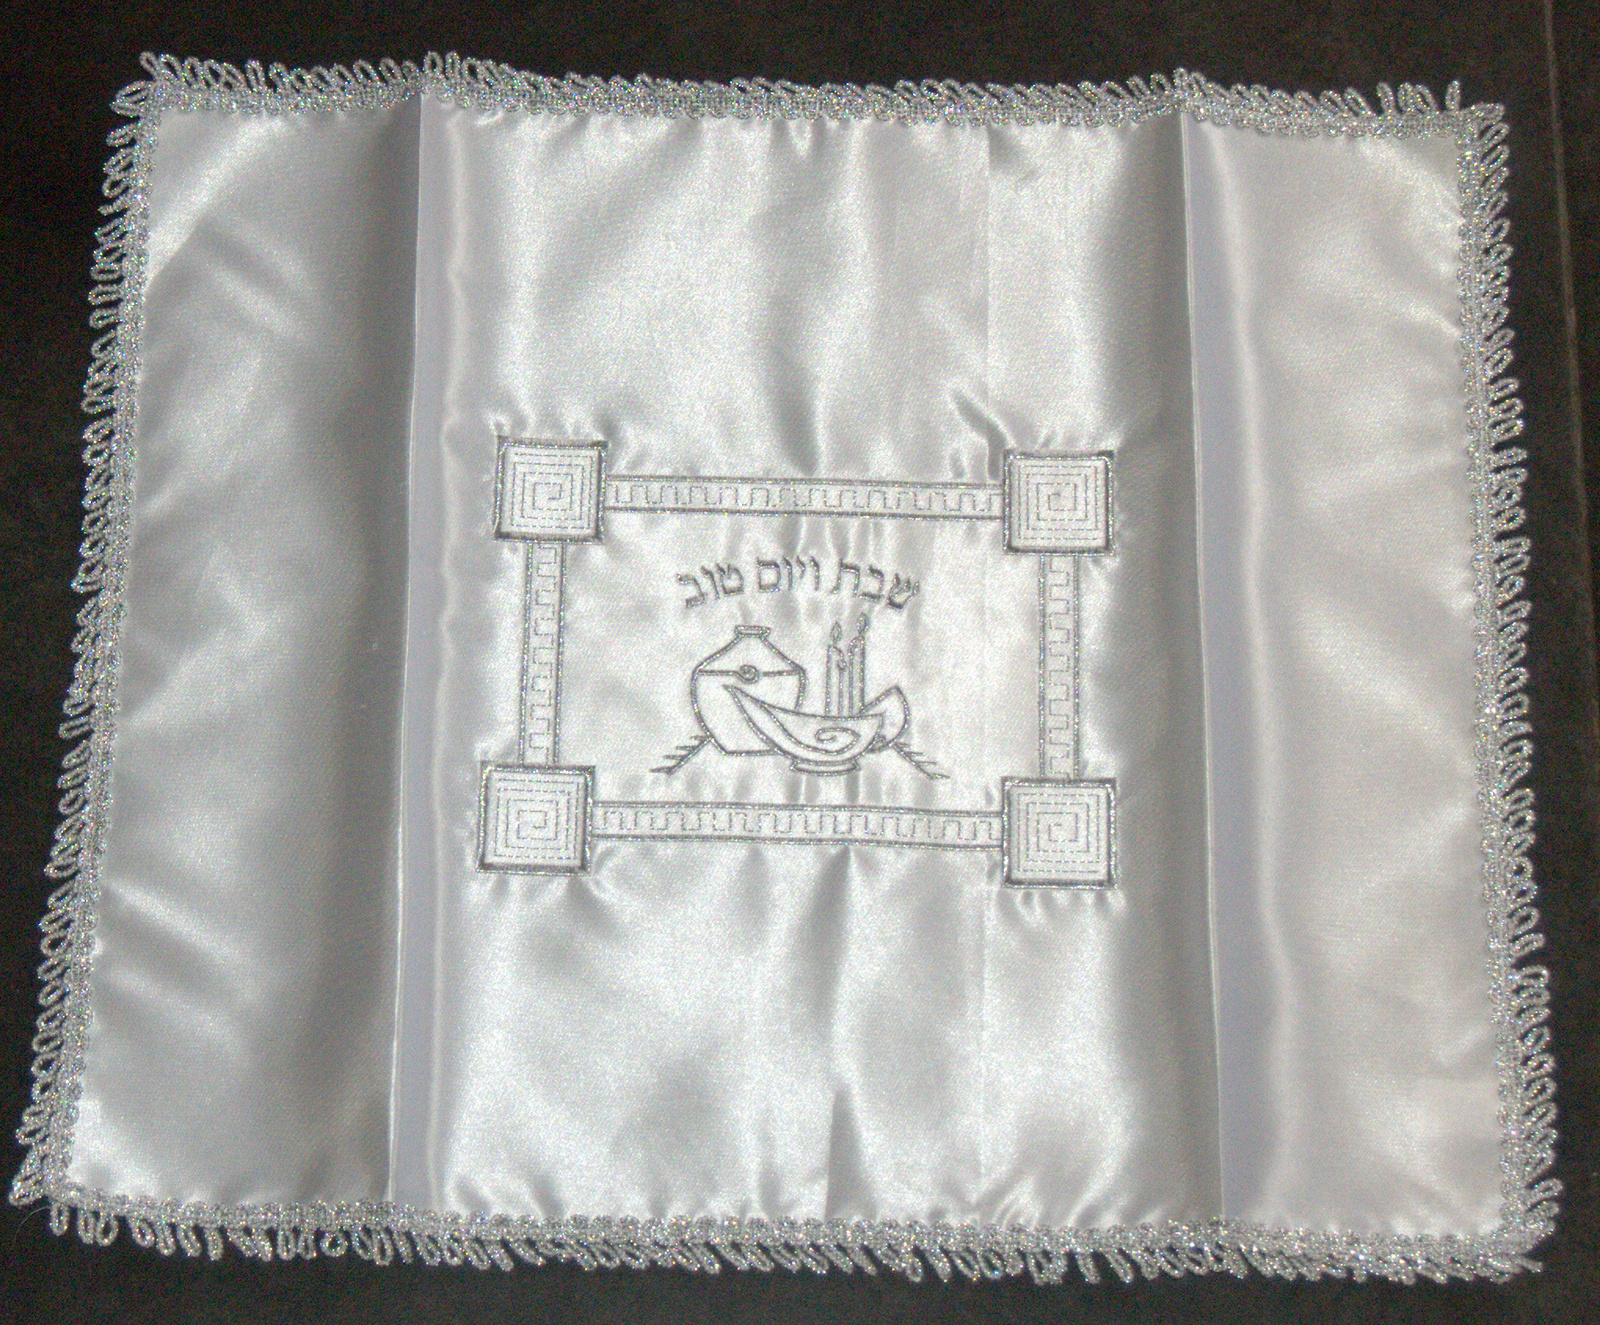 Judaica Challah Bread Cover Shabbat Yom Tov Kiddush White Satin Silver Embroid